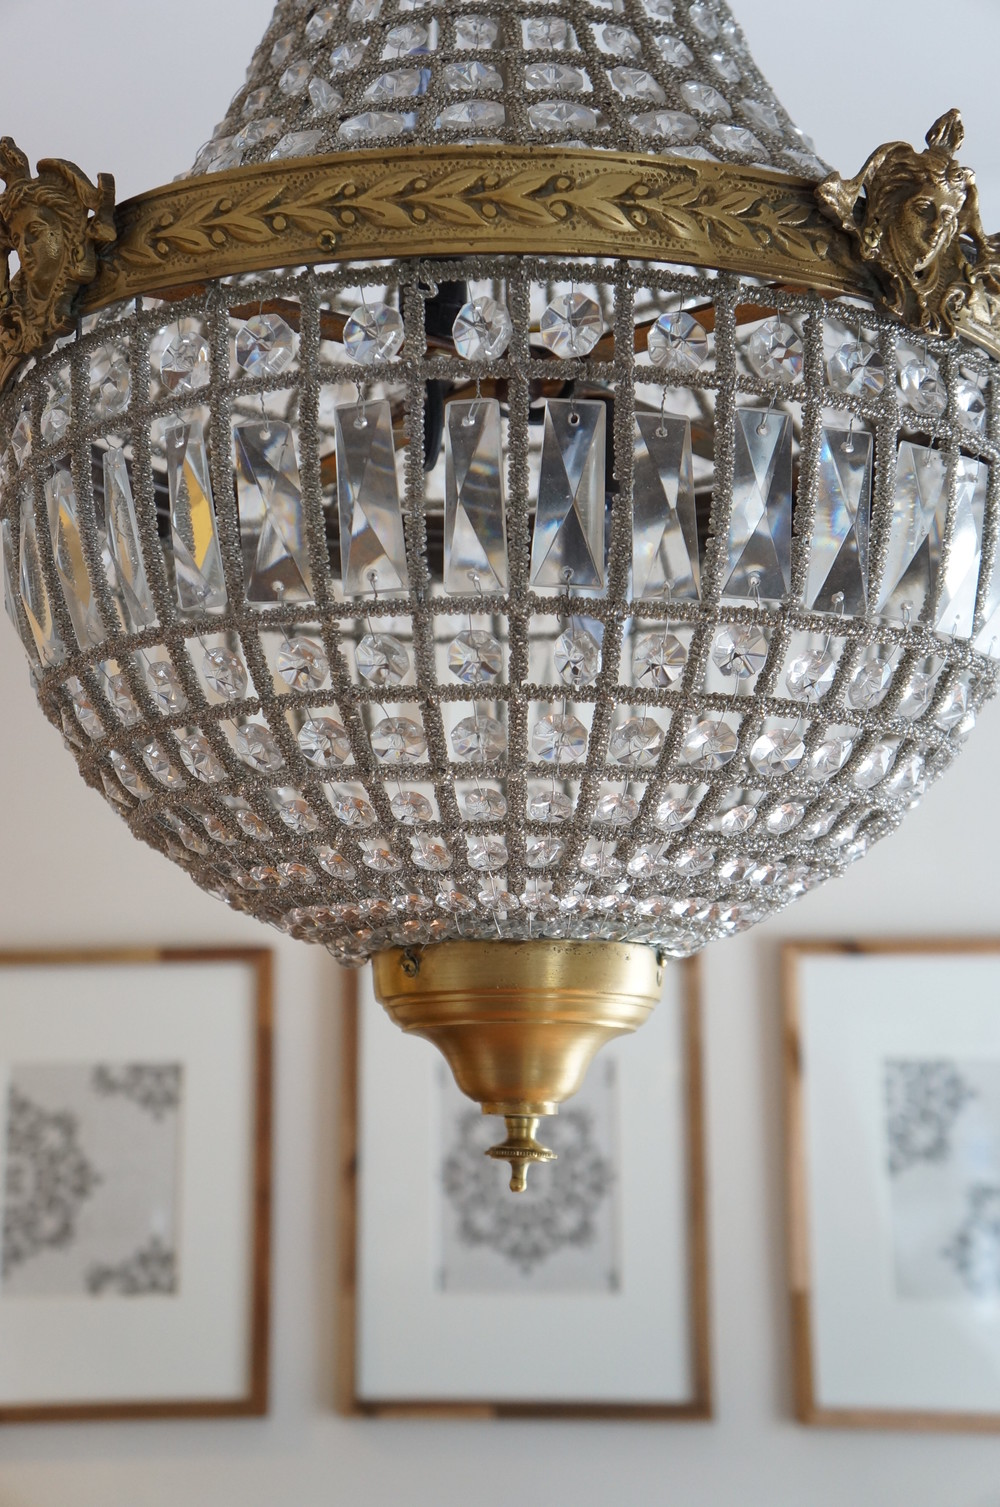 Frames with chandelier